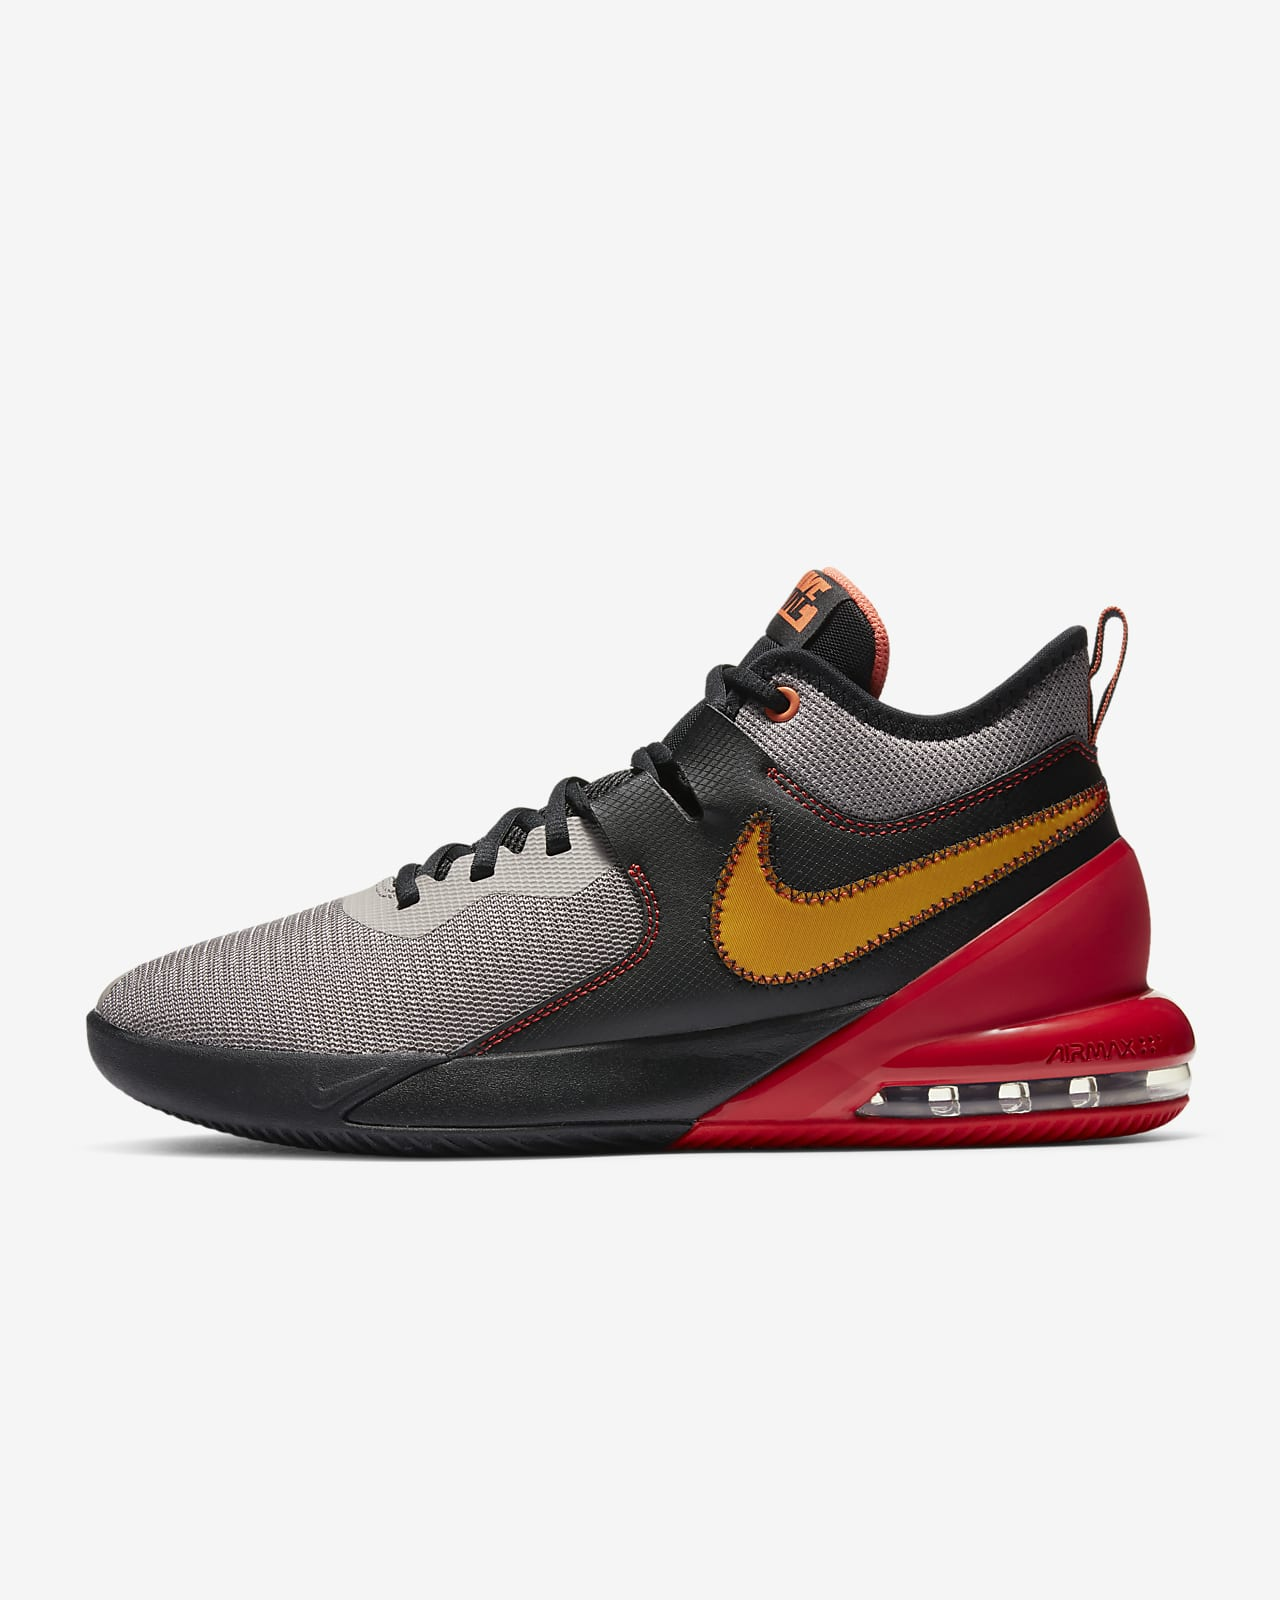 Nike Air Max Impact Basketball Shoe